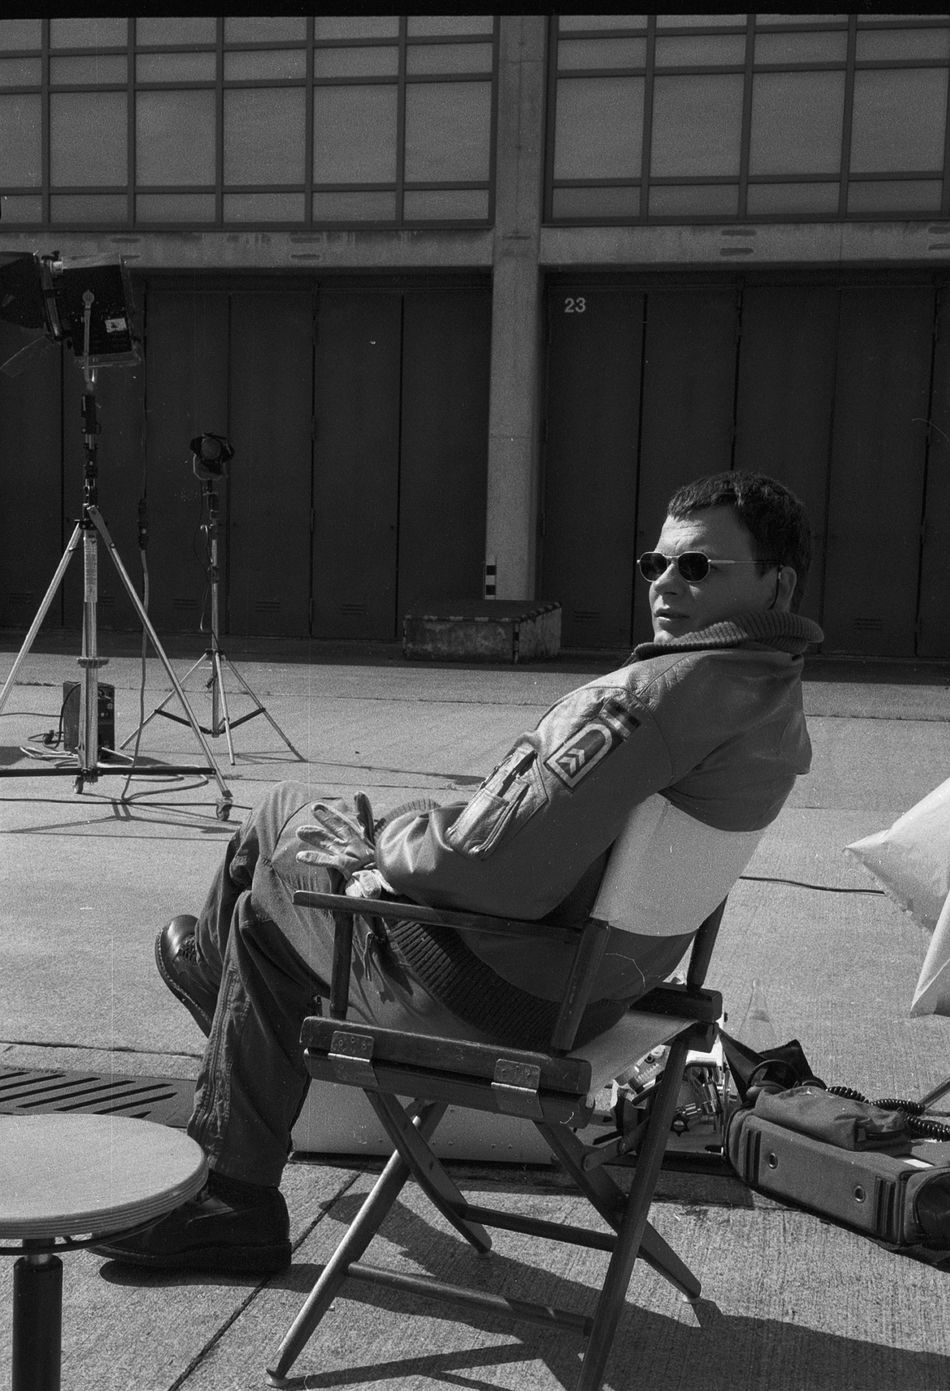 Actor Analogue Photography Black And White Photography Black And White Portrait Coolness Famous Person Film Leisure Activity Men Occupation On Location Person Portrait Real People Rettunsgsflieger Sitting Soldier Sunglassses Sunset Ulrich Bähnk Uniform